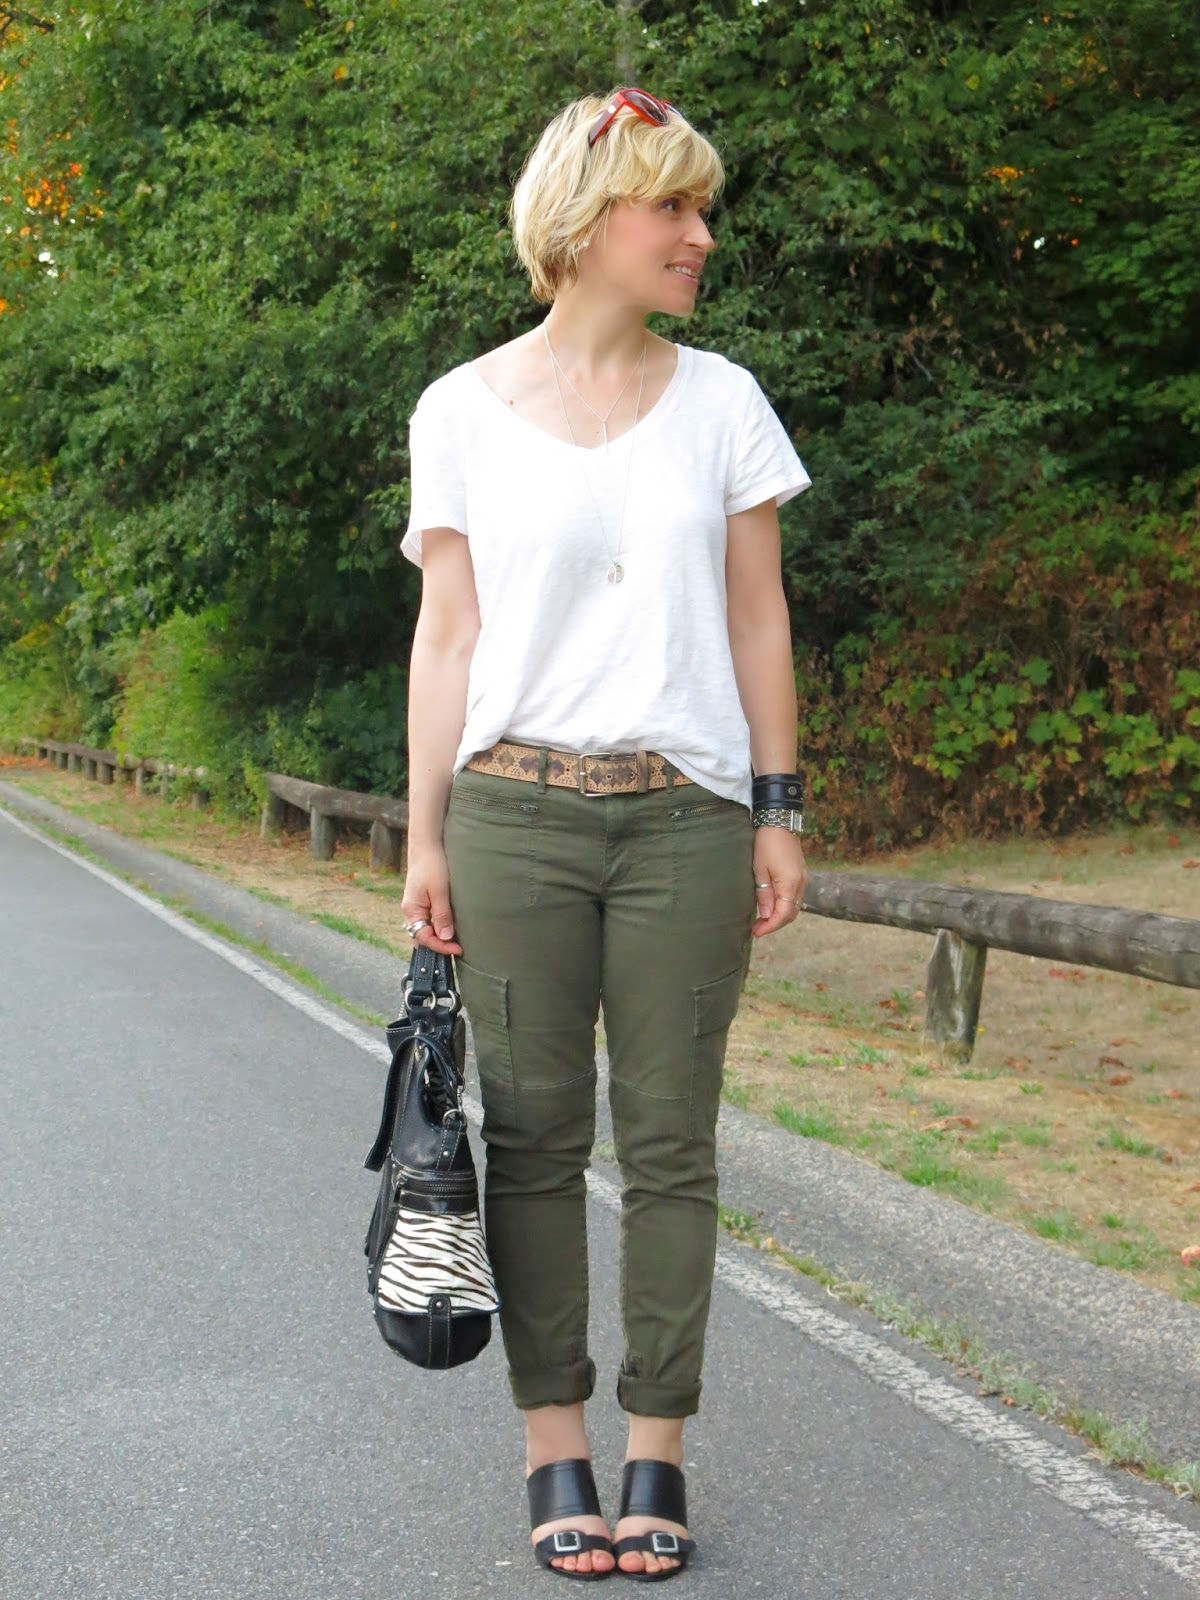 styling a basic white tee-shirt and skinny cargo pants with leather accessories